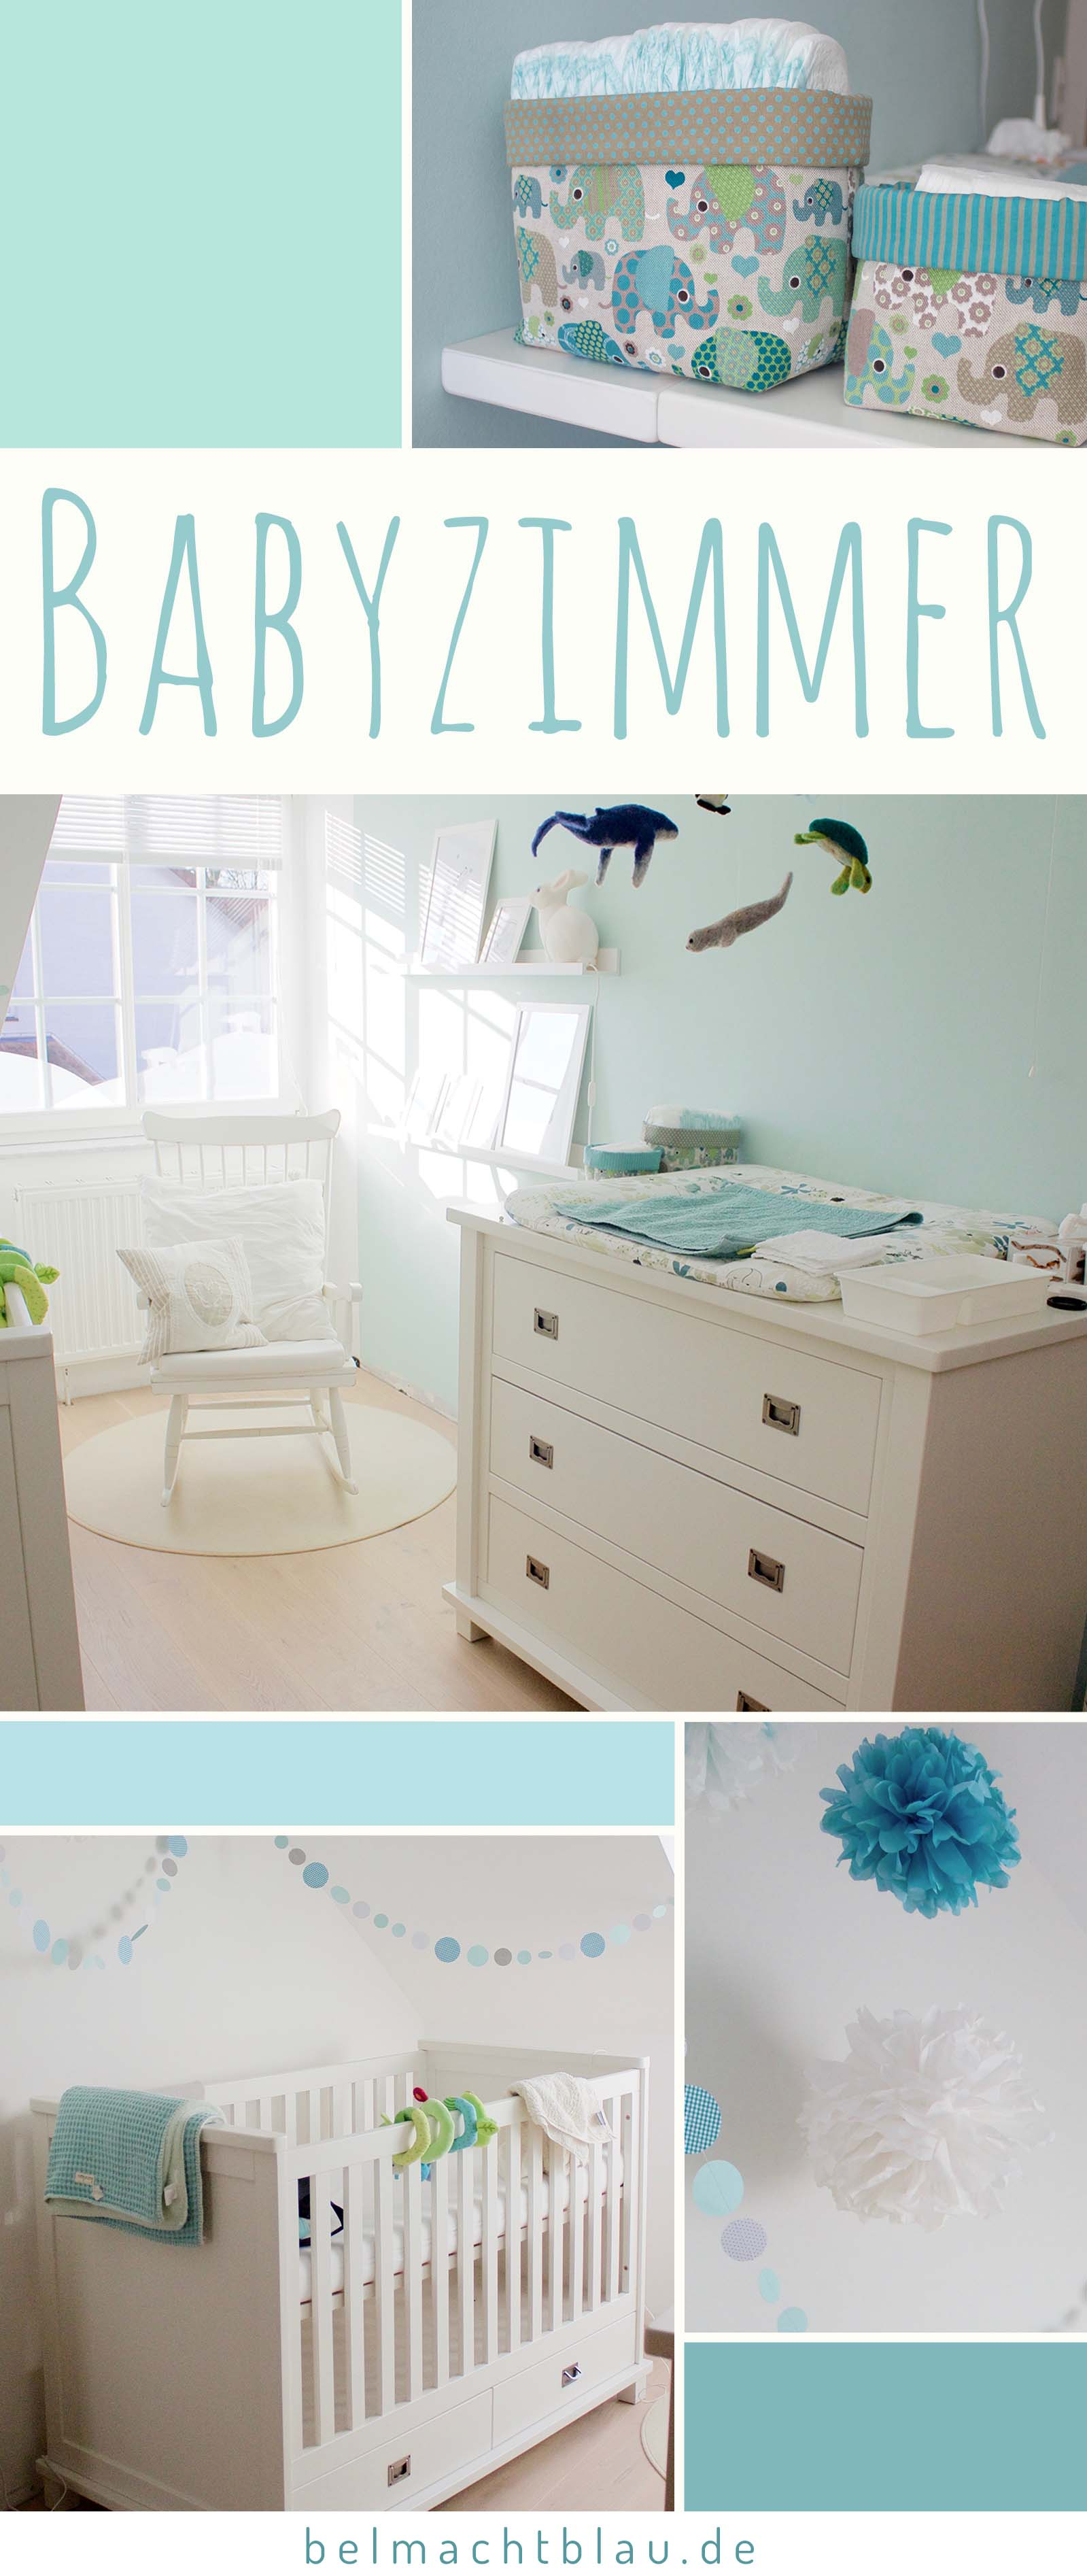 einblicke ins babyzimmer bel macht blau. Black Bedroom Furniture Sets. Home Design Ideas